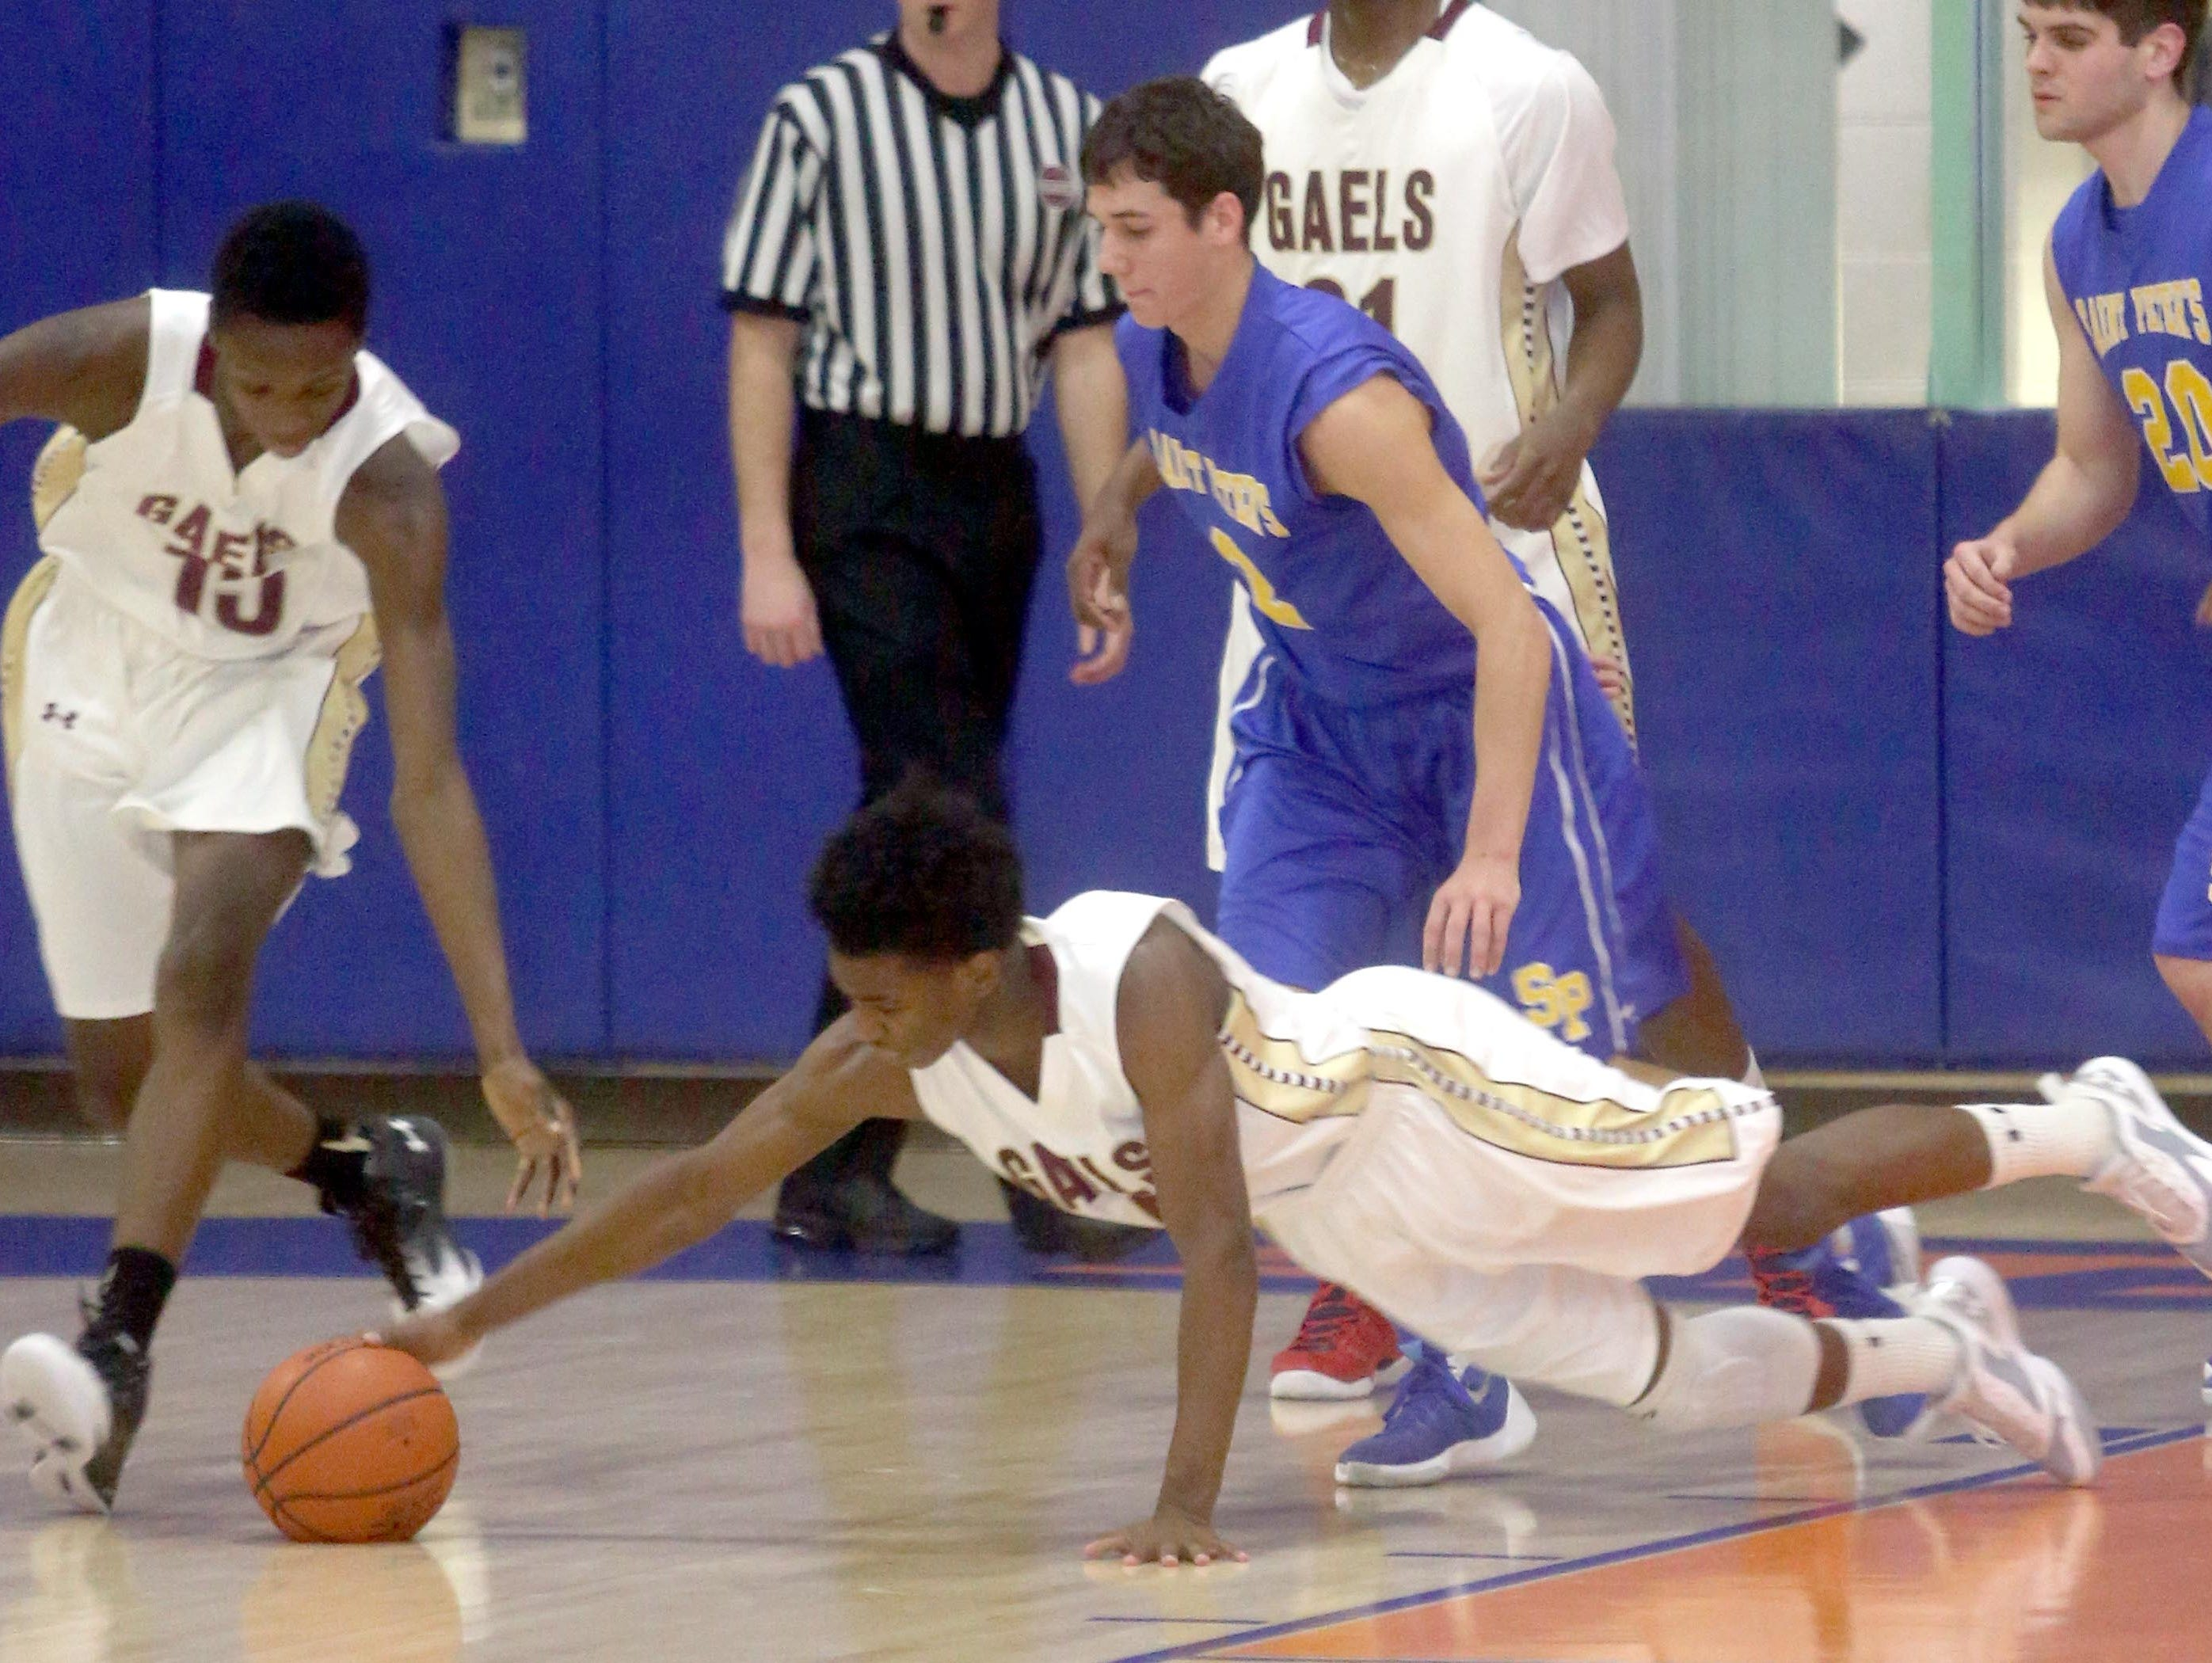 Iona Prep's Gio Gabbidon dives for a loose ball during a CHSAA second round AA playoff basketball game against St. Peter's at St. Raymond High School in the Bronx March 3, 2016. Iona Prep defeated St. Peter's 51-43.